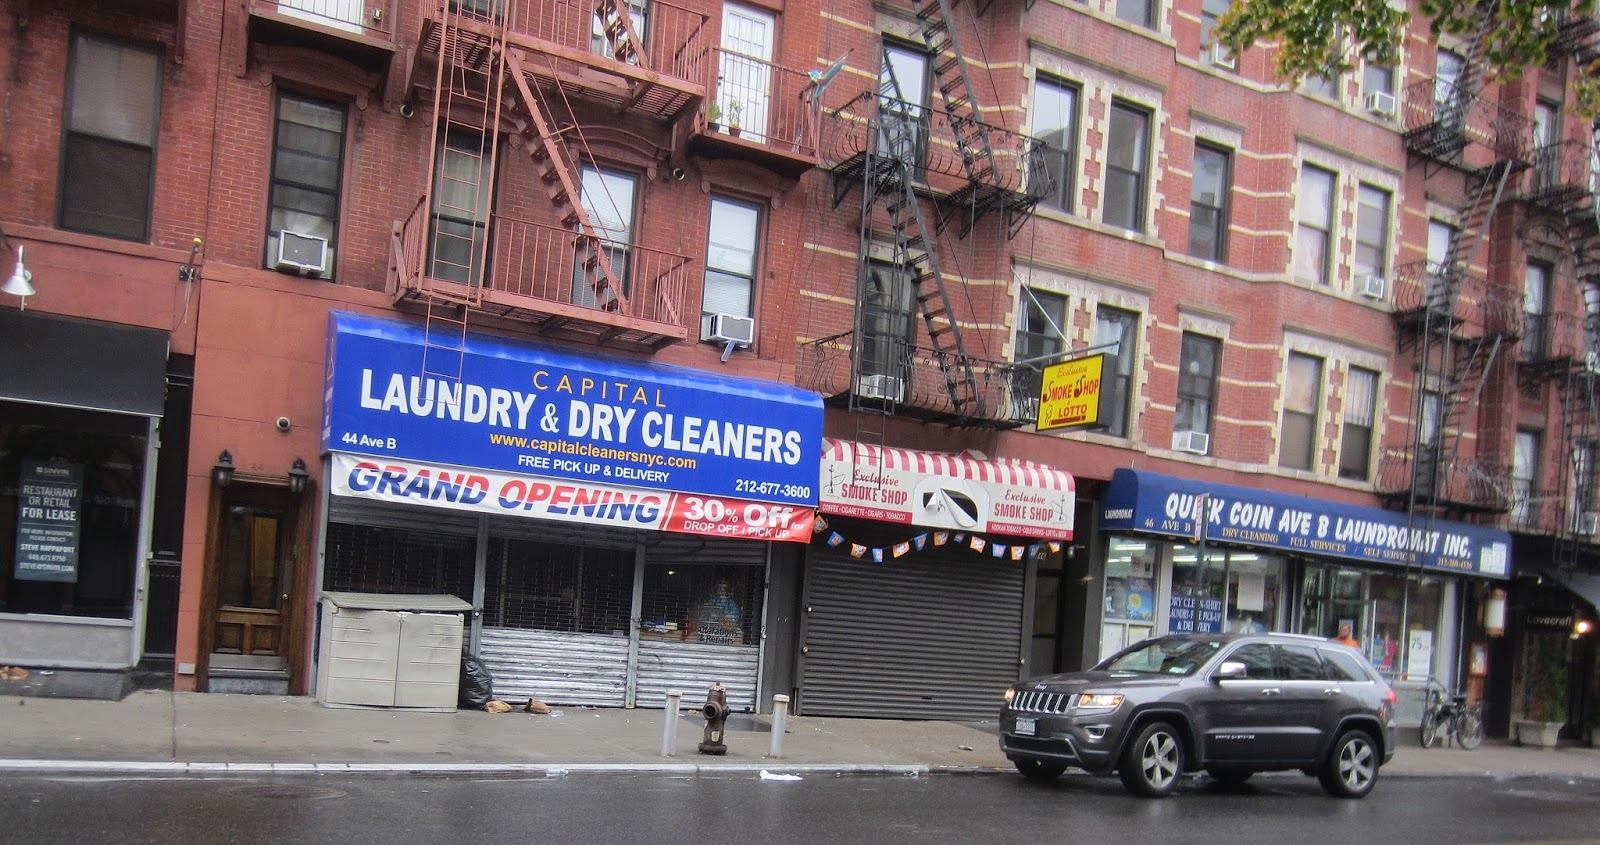 Ev Grieve Despite Grand Opening Banner Capital Laundry